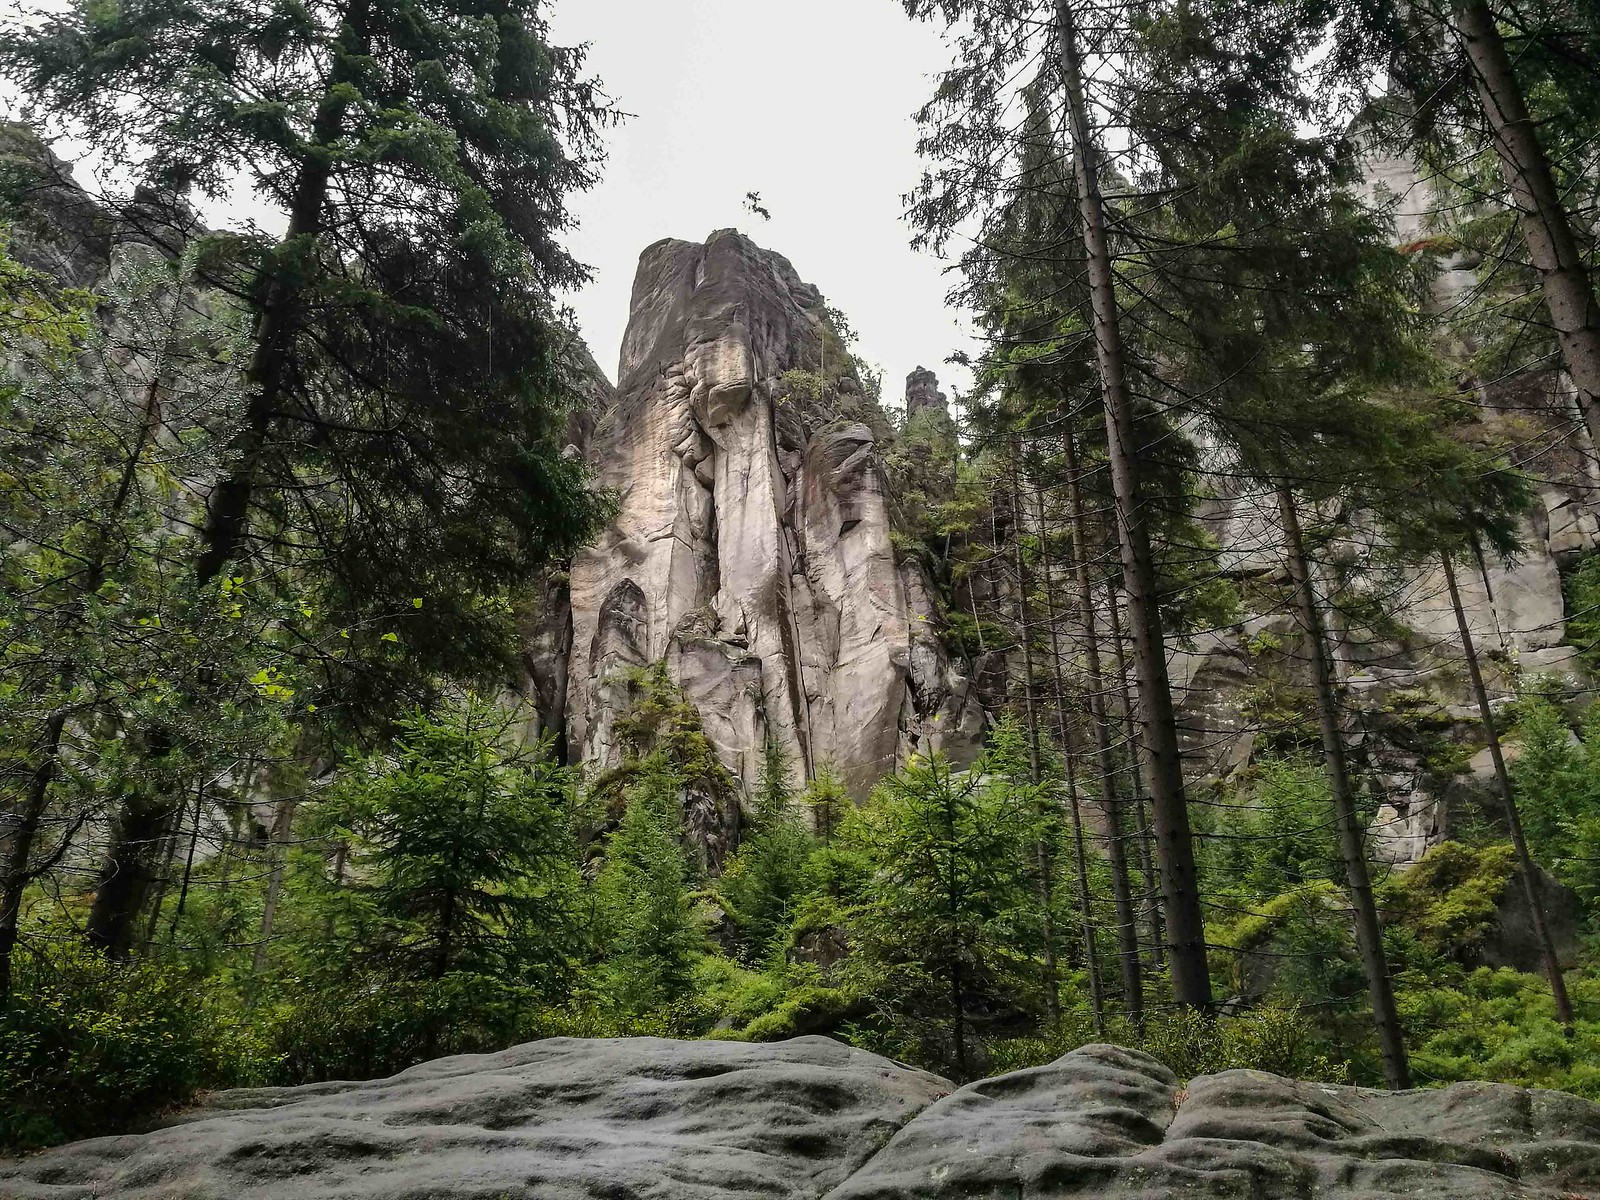 Natural wonders in the Czech Republic: Adrspach-Teplice Rock Towns